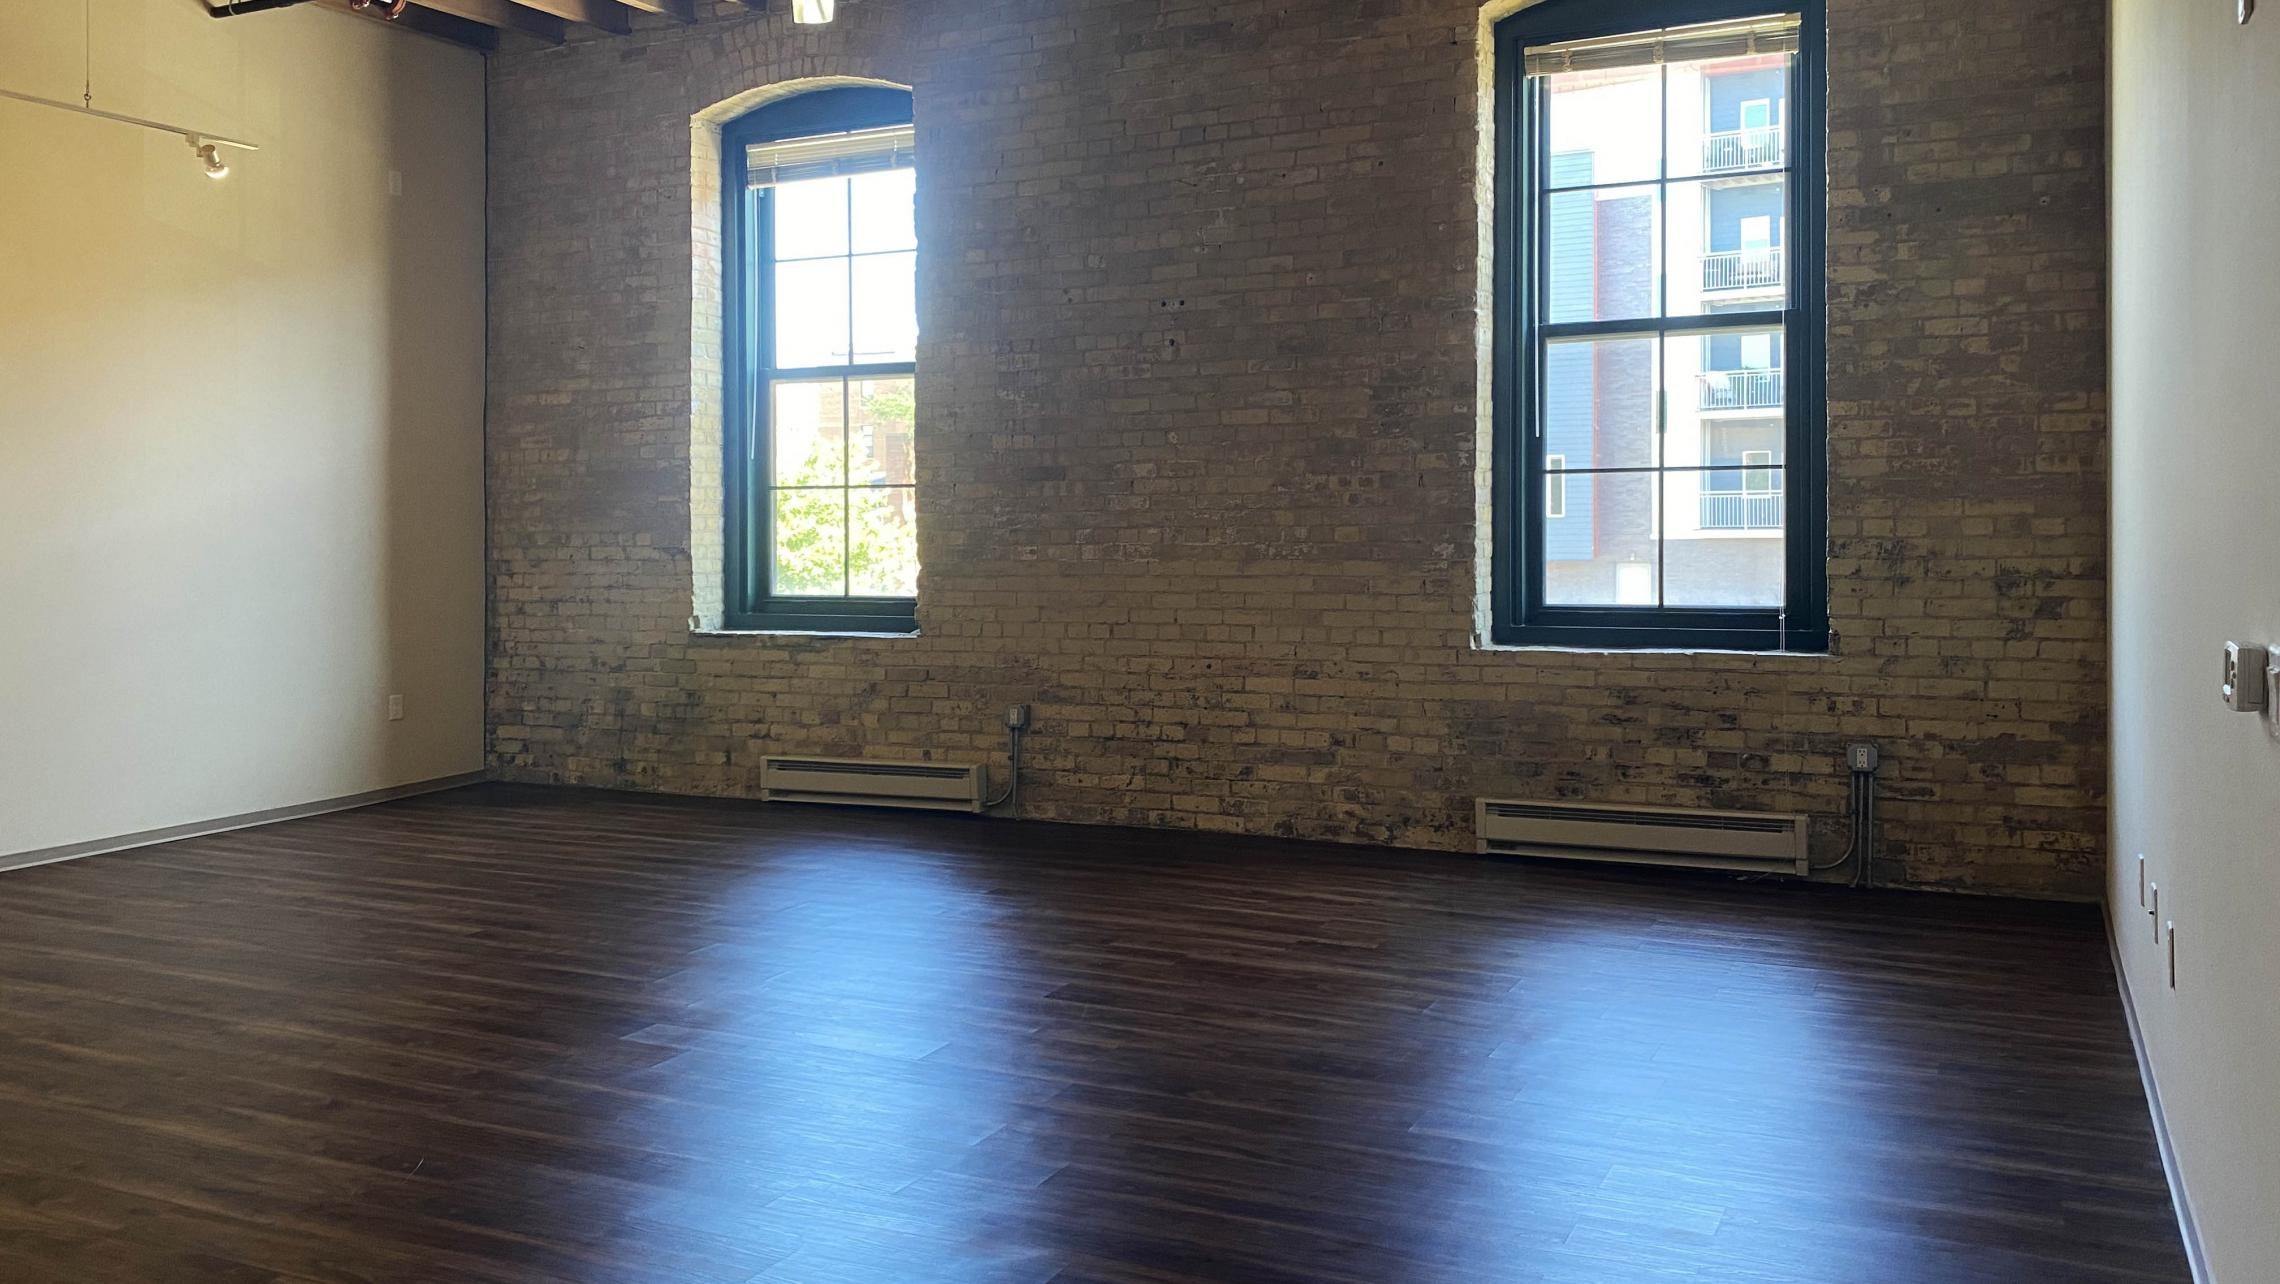 Tobacco-Lofts-Yards-Apartment-E211-One-Bedroom-Historic-Exposed-Brick-Timber-Beams-High-Ceilings-Design-Unique-Downtown-Bike-Path-Kitchen-Bathroom-Cats-Fitness-Courtyard-Lounge